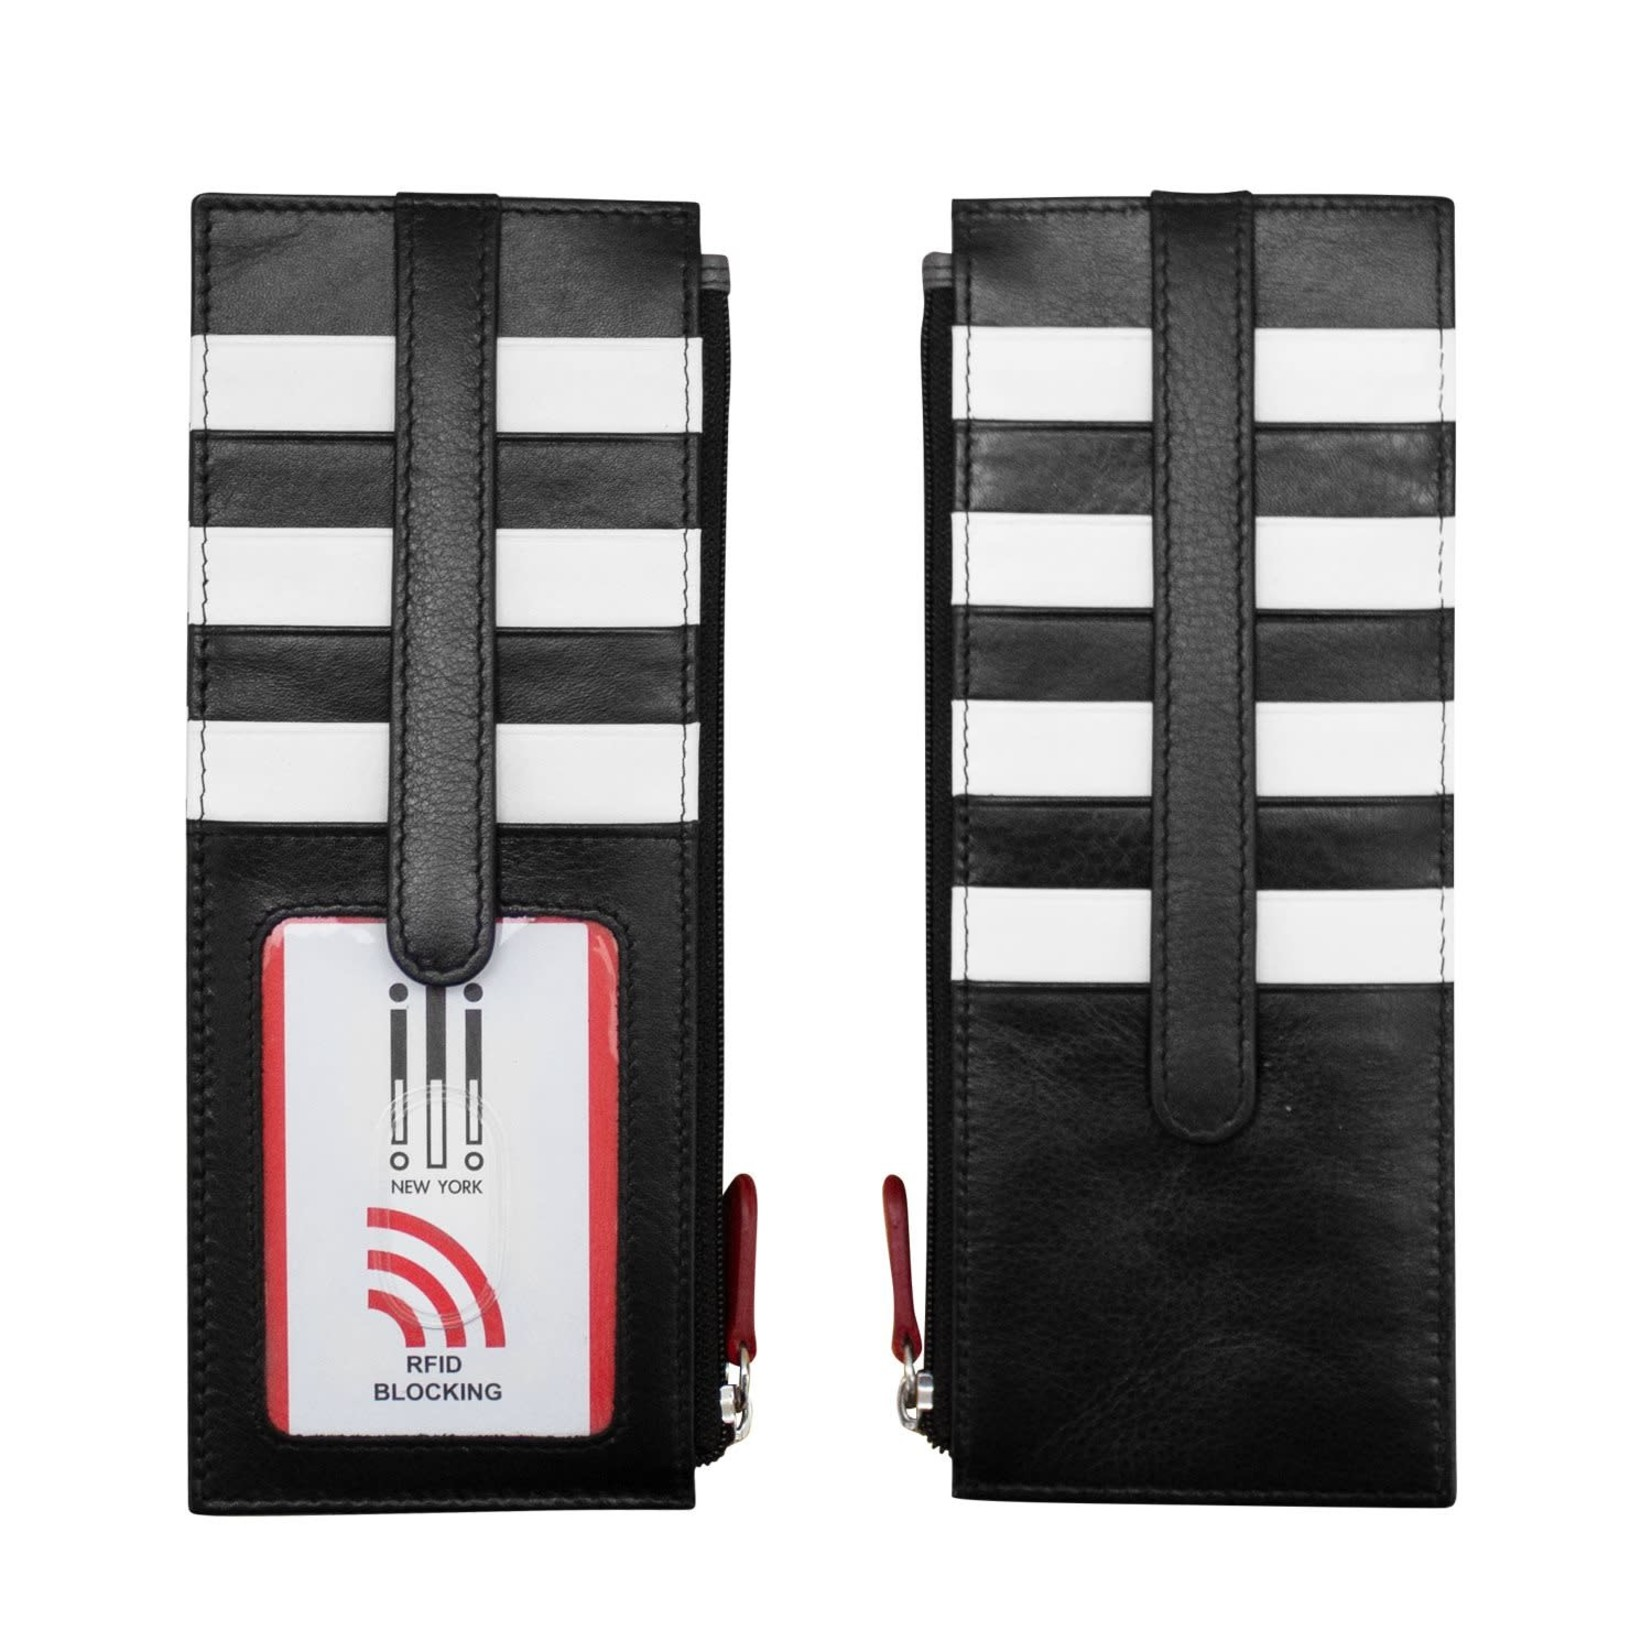 Leather Handbags and Accessories 7800 Blk/Wht/Red - RFID Card Holder